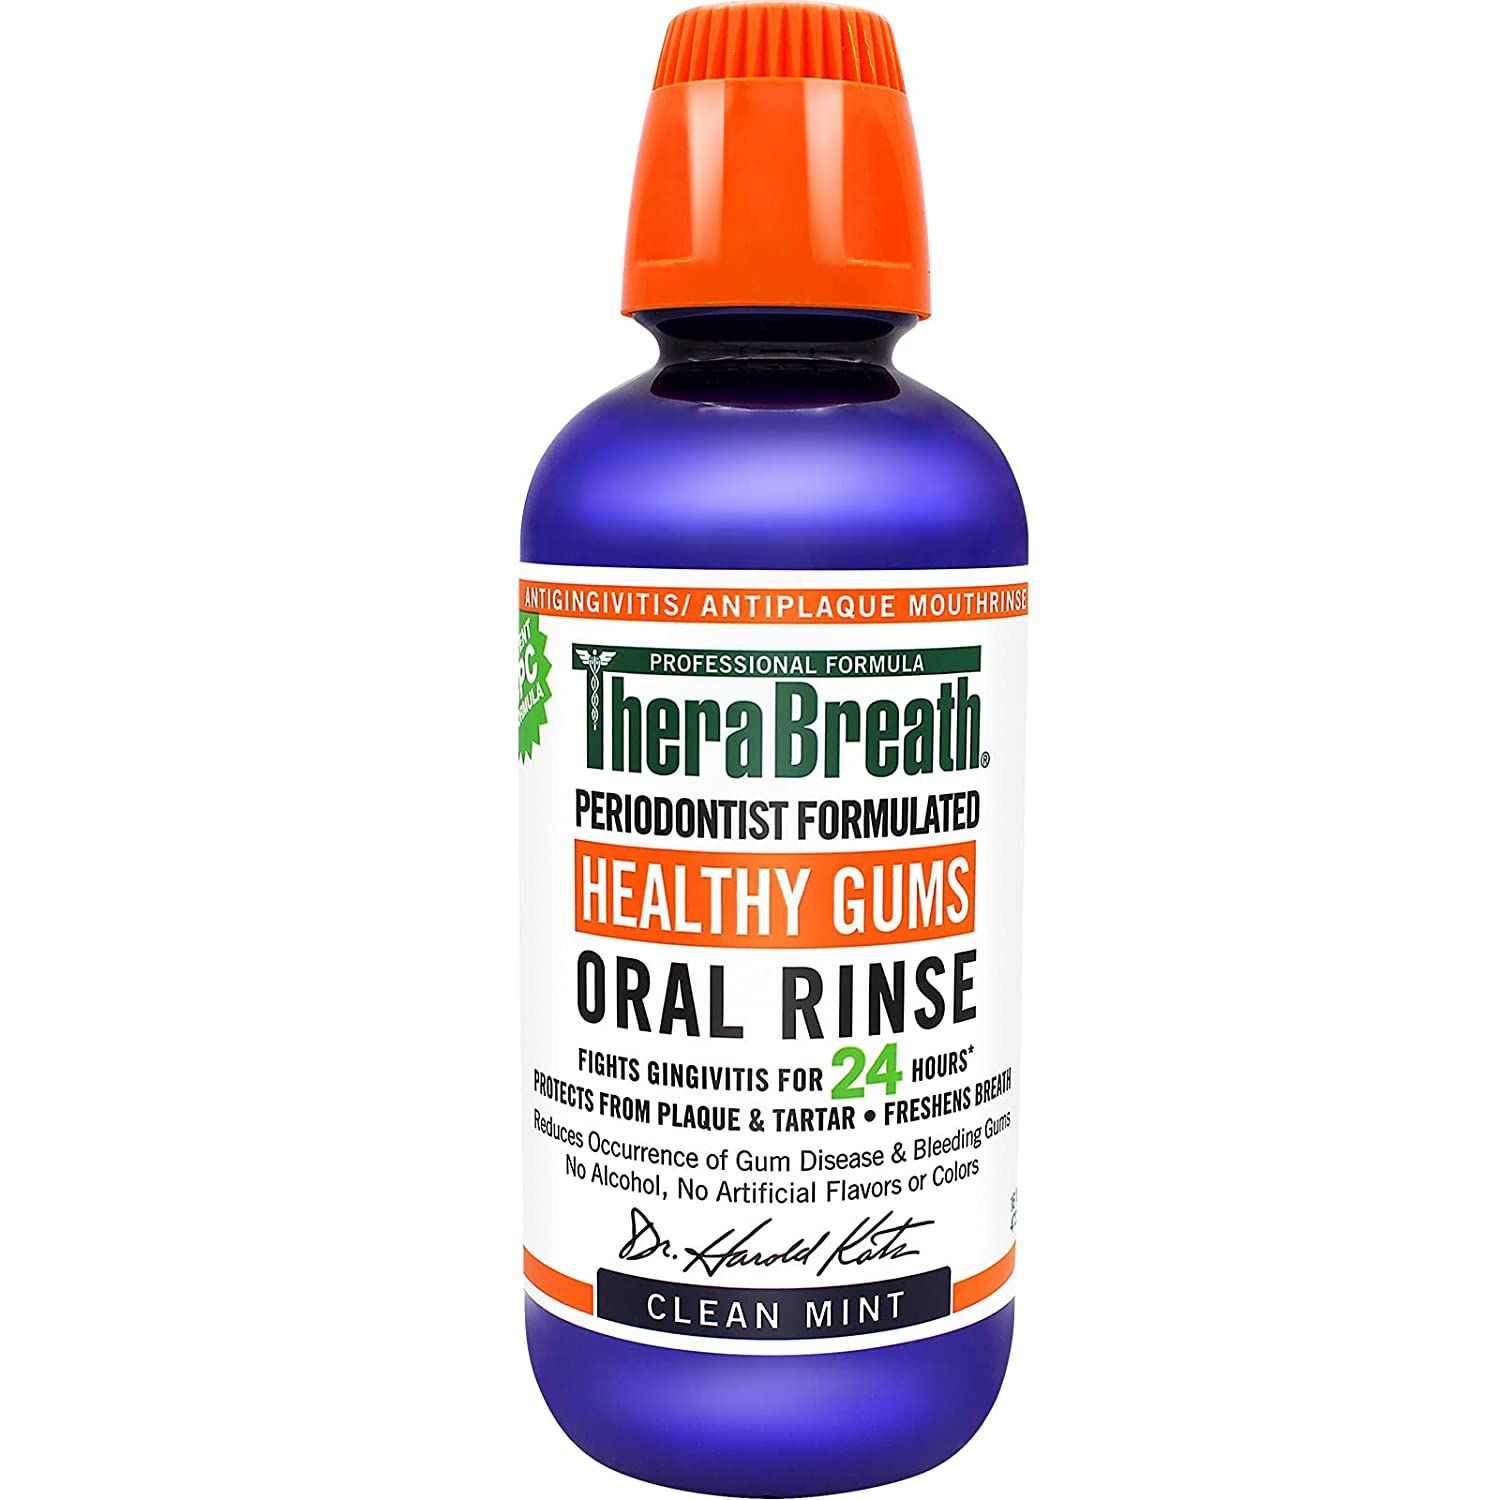 TheraBreath Healthy Gums Periodontist Formulated 24-Hour Oral Rinse